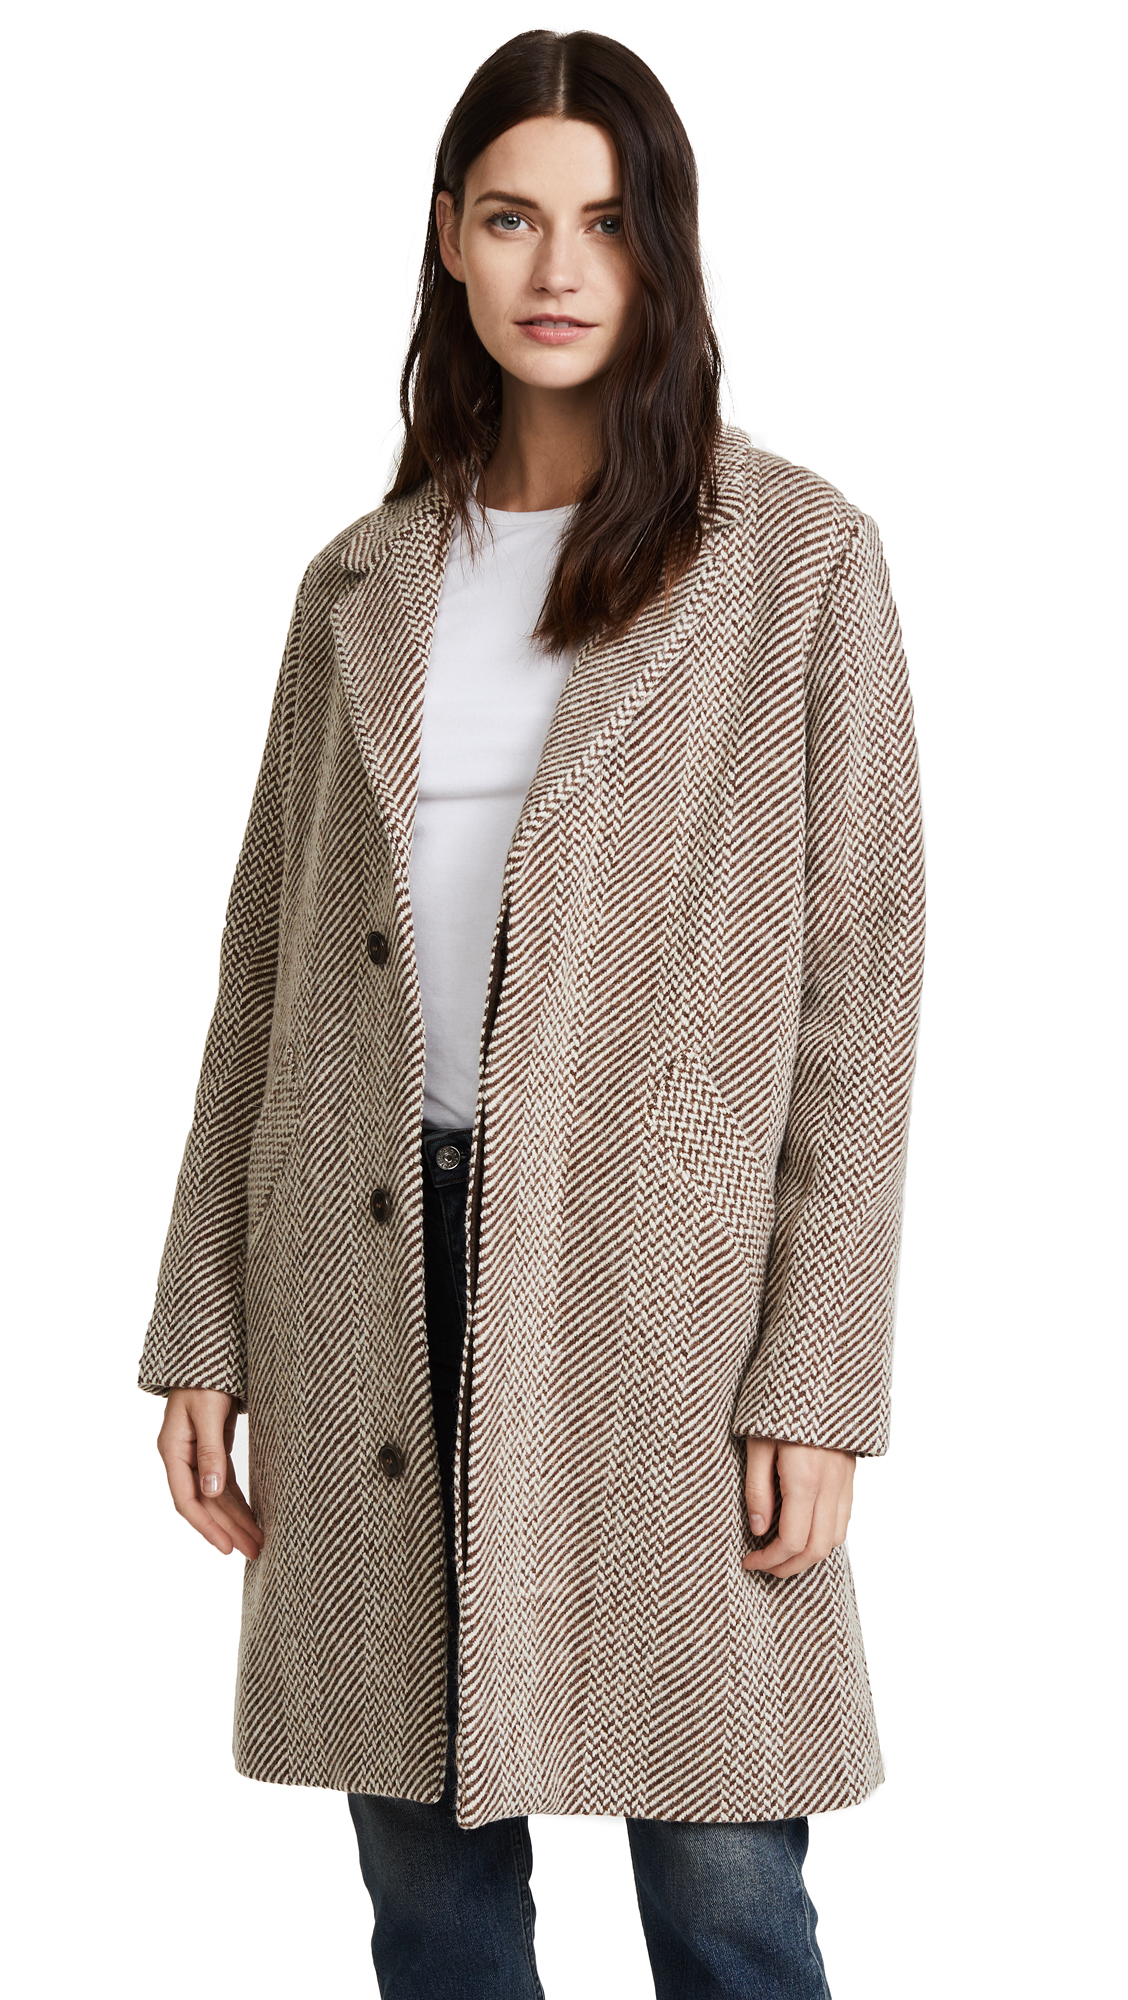 A.P.C. Silvana Tweed Coat - Noisette